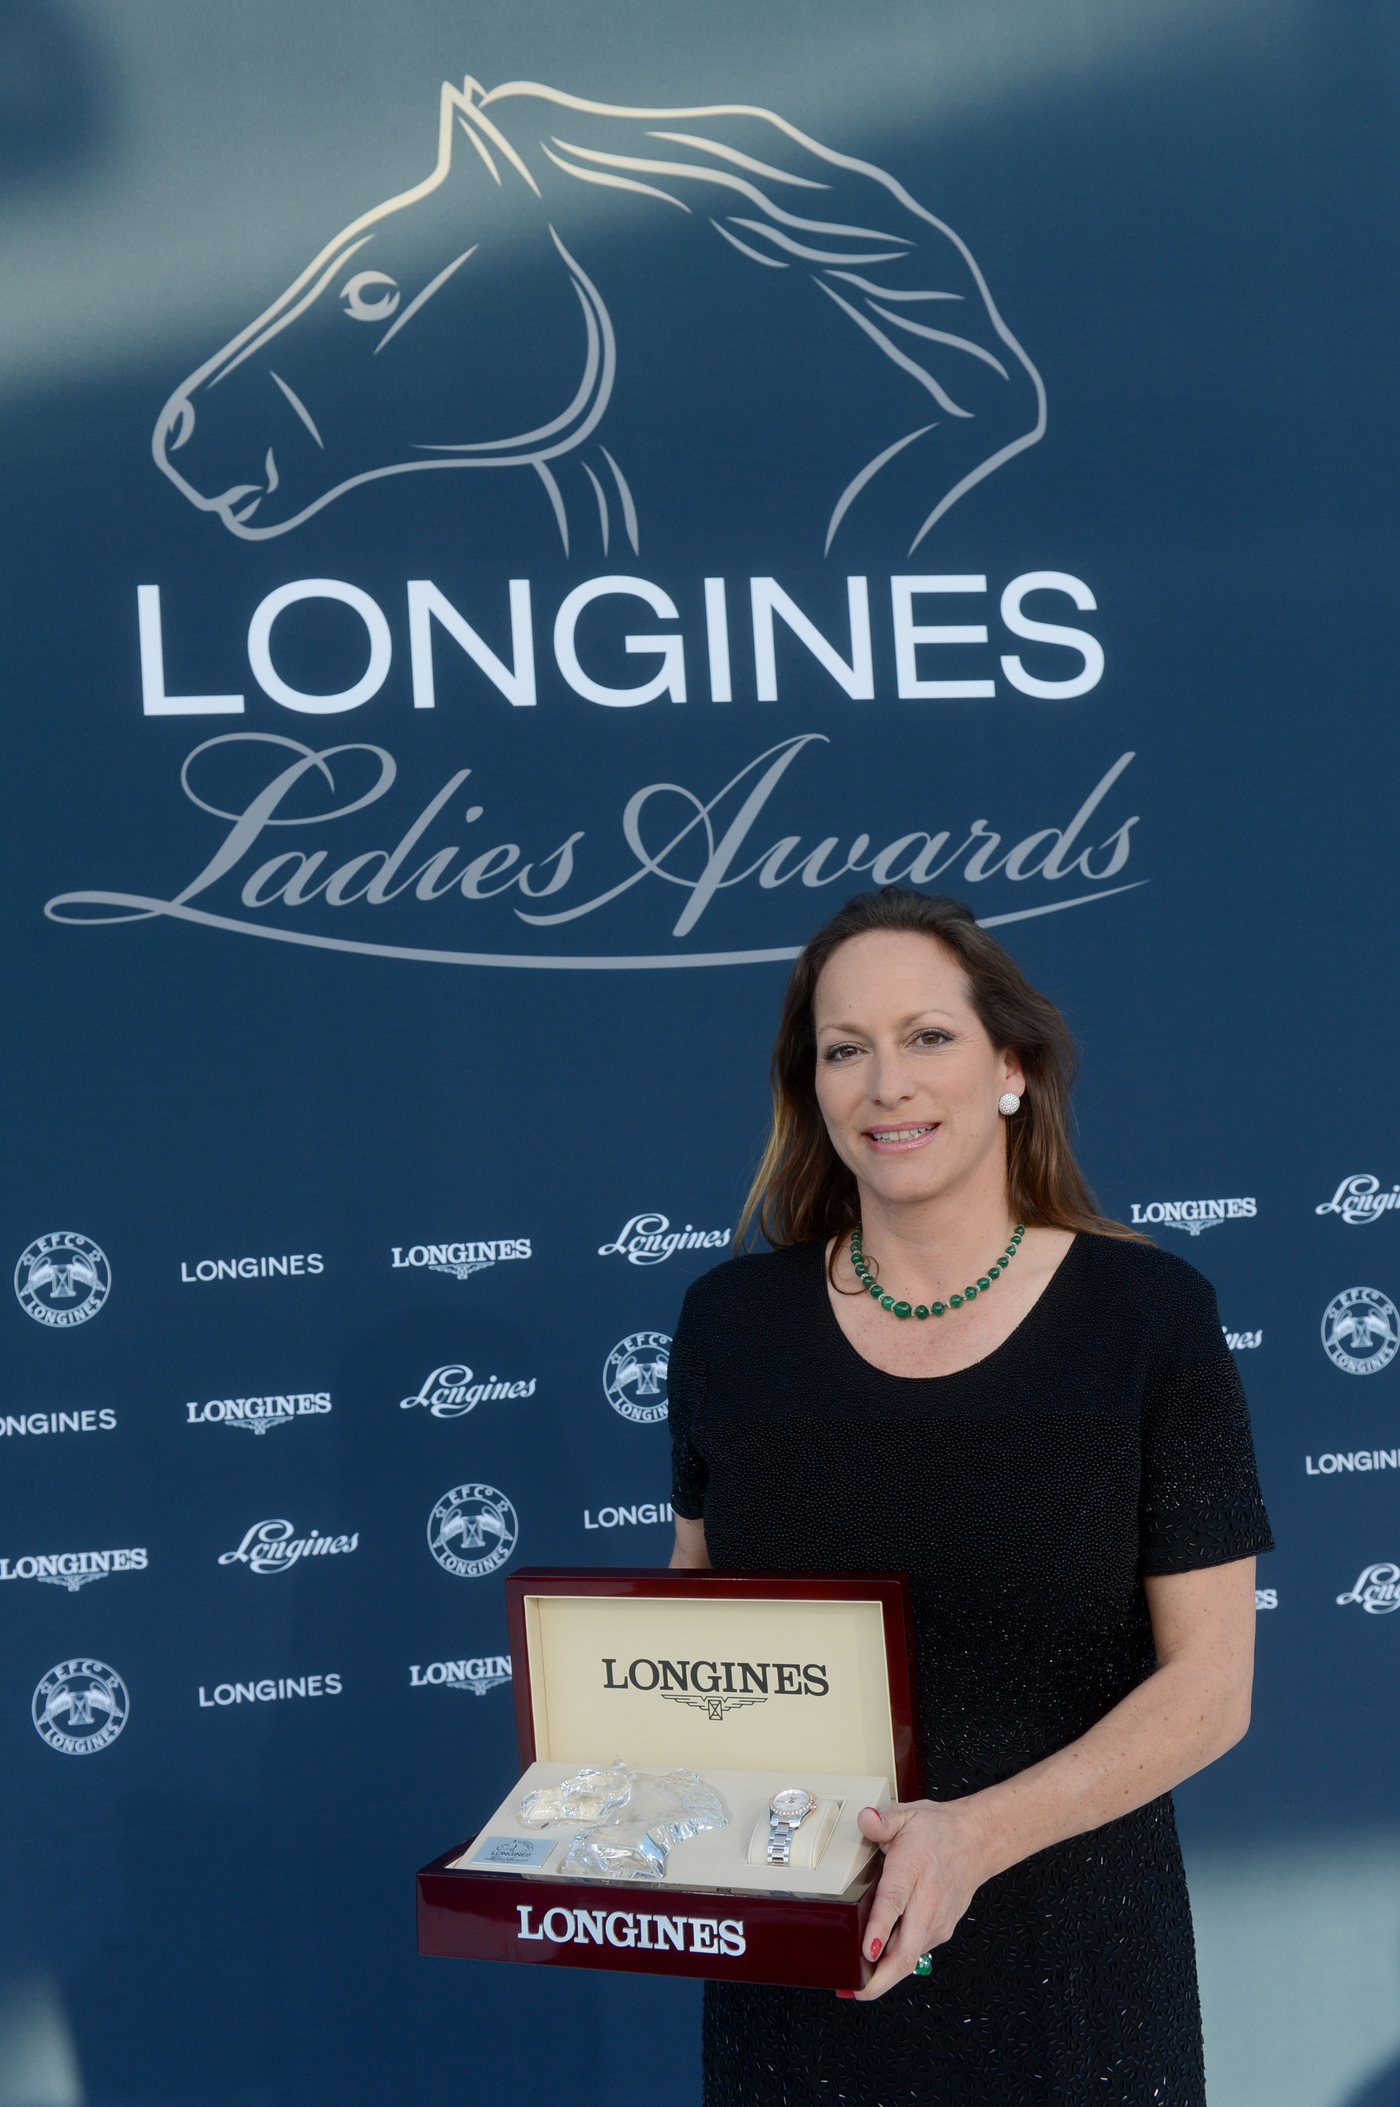 Longines Flat Racing Event: Longines Ladies Awards 6